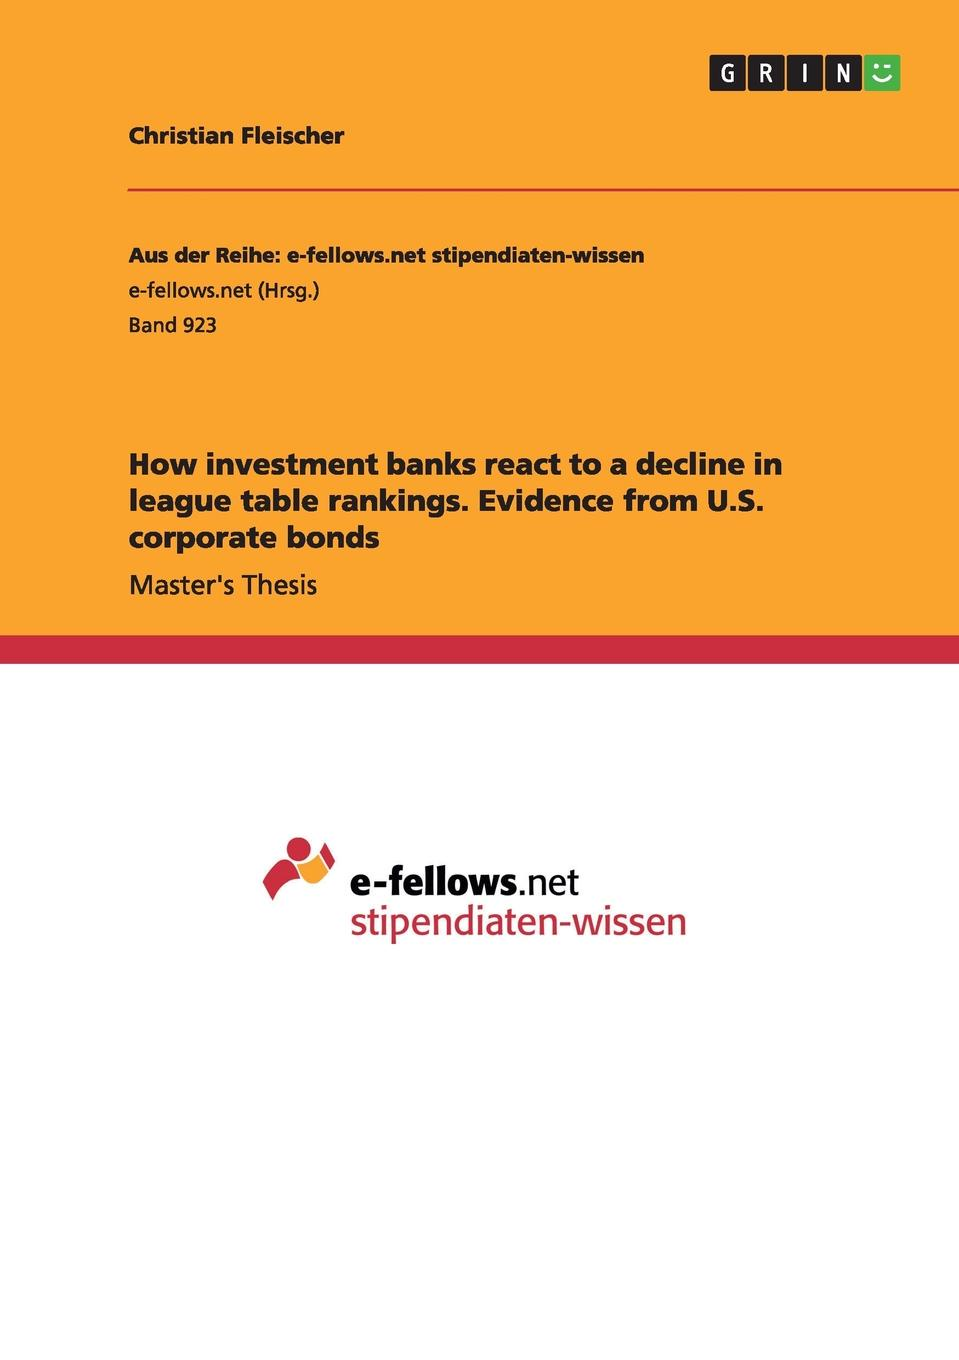 Christian Fleischer How investment banks react to a decline in league table rankings. Evidence from U.S. corporate bonds jerald pinto e quantitative investment analysis workbook